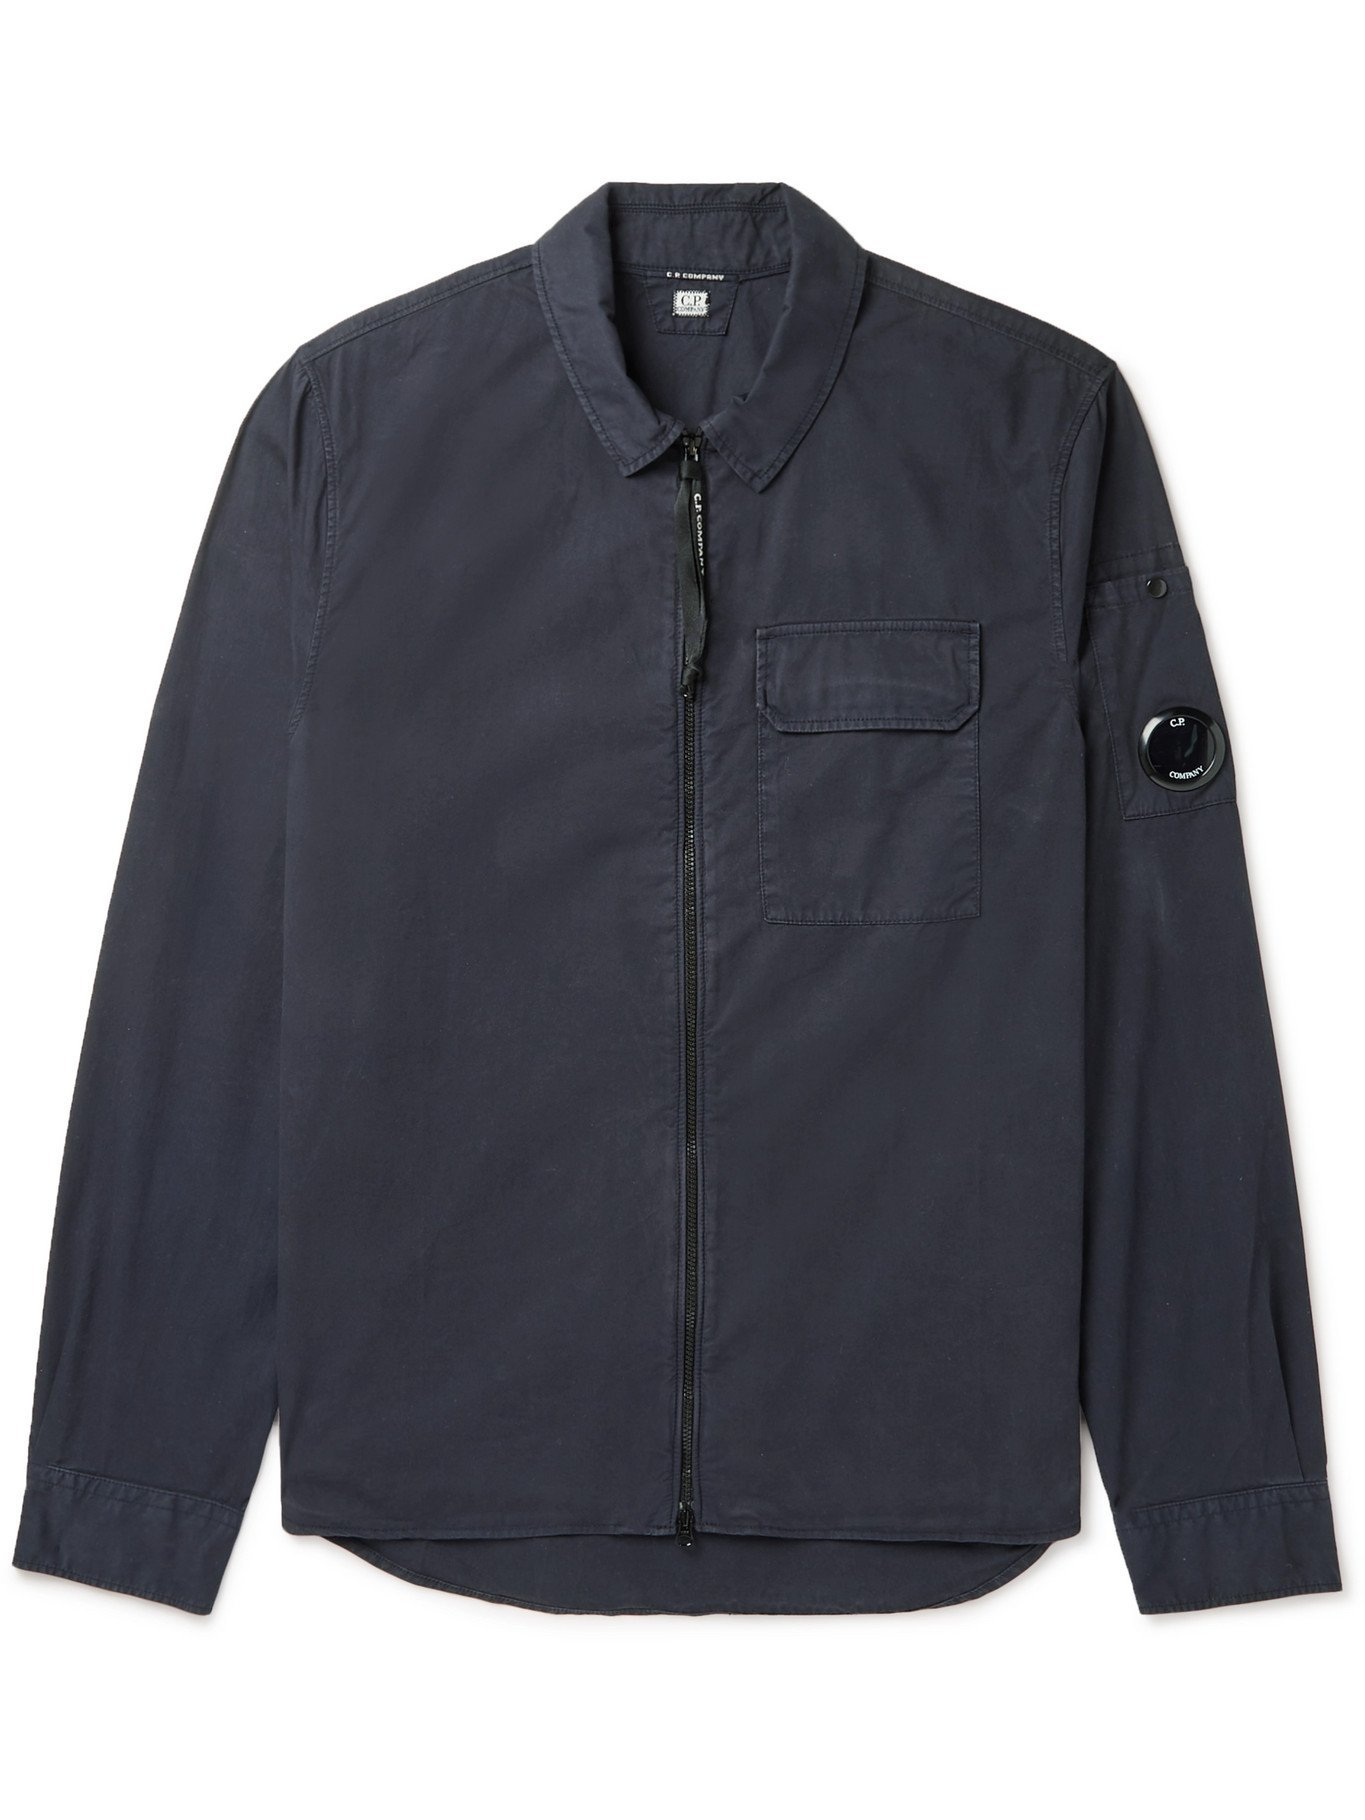 Photo: C.P. COMPANY - Slim-Fit Garment-Dyed Cotton-Gabardine Overshirt - Blue - S